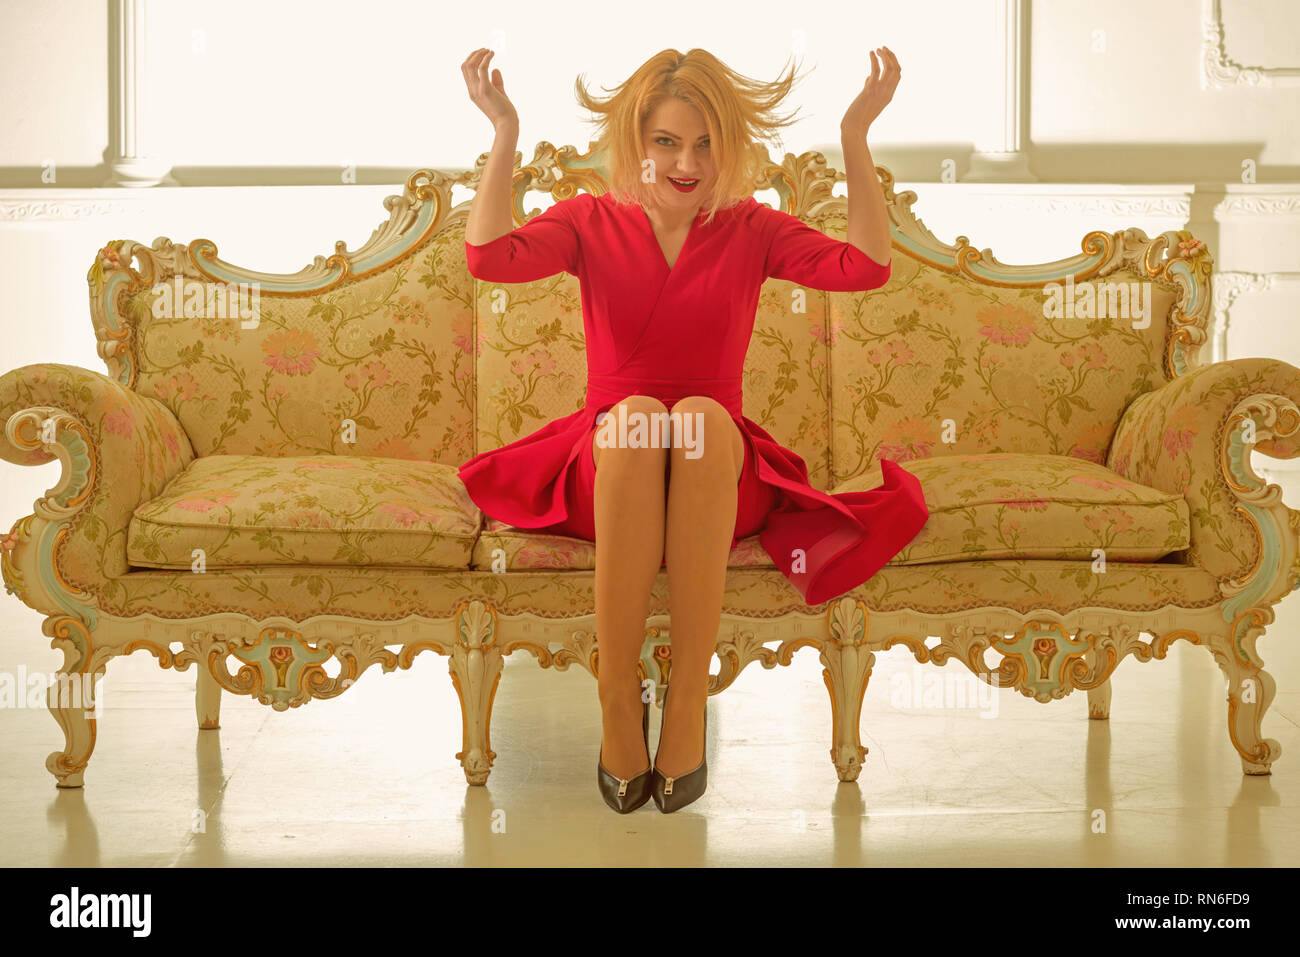 hairdresser salon for a true lady just from hairdresser. perfect hair style at hairdresser studio. woman hairdresser on luxury sofa. she loves her - Stock Image